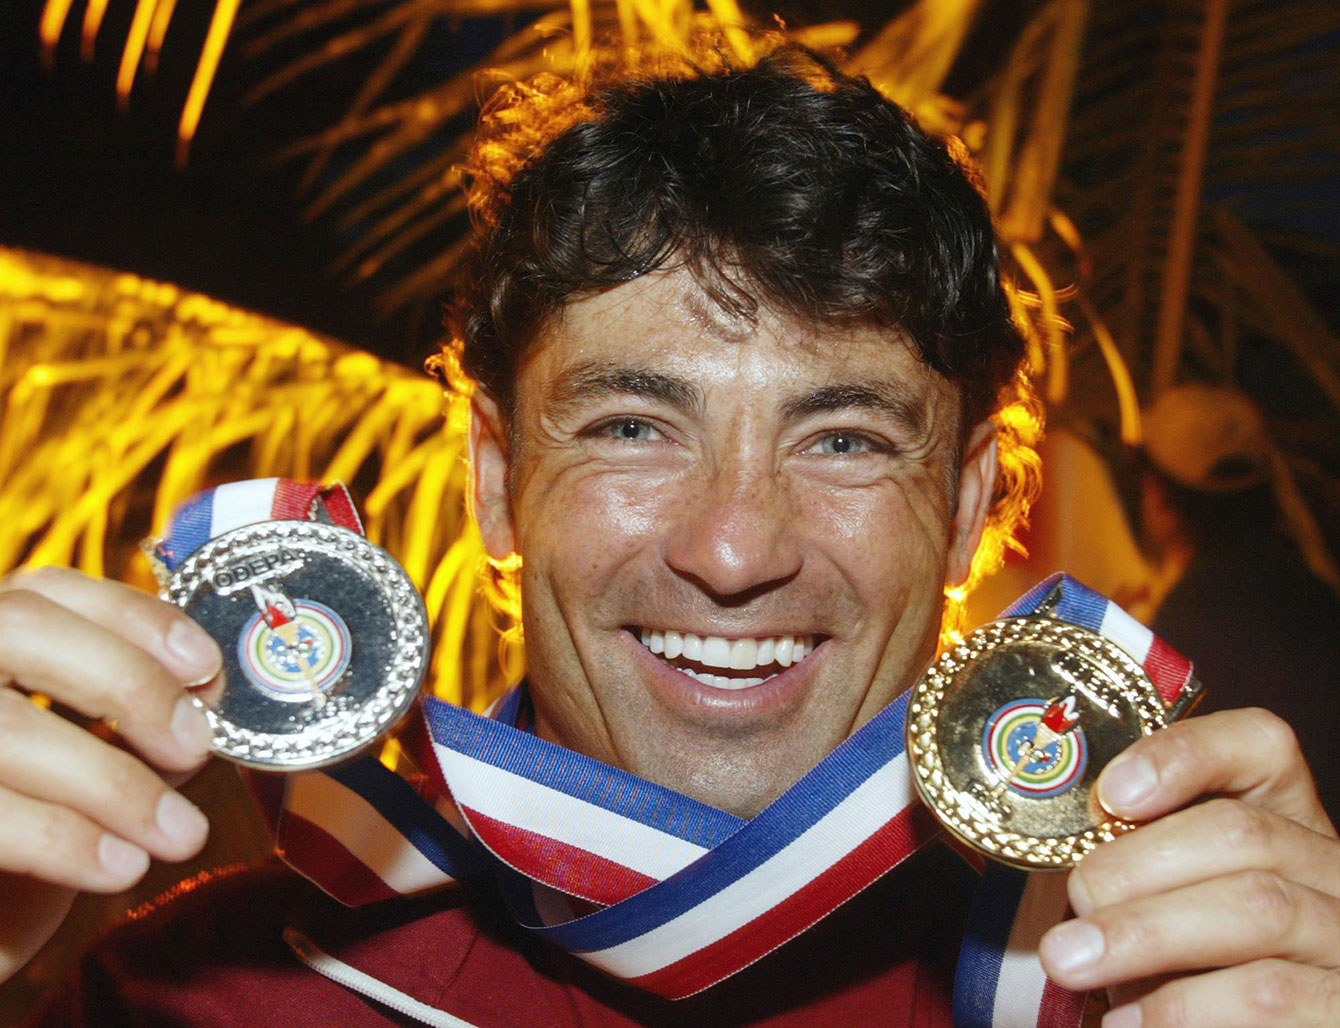 Water skier Jaret Llewellyn holds up his two Pan Am medals from Santo Domingo 2003.